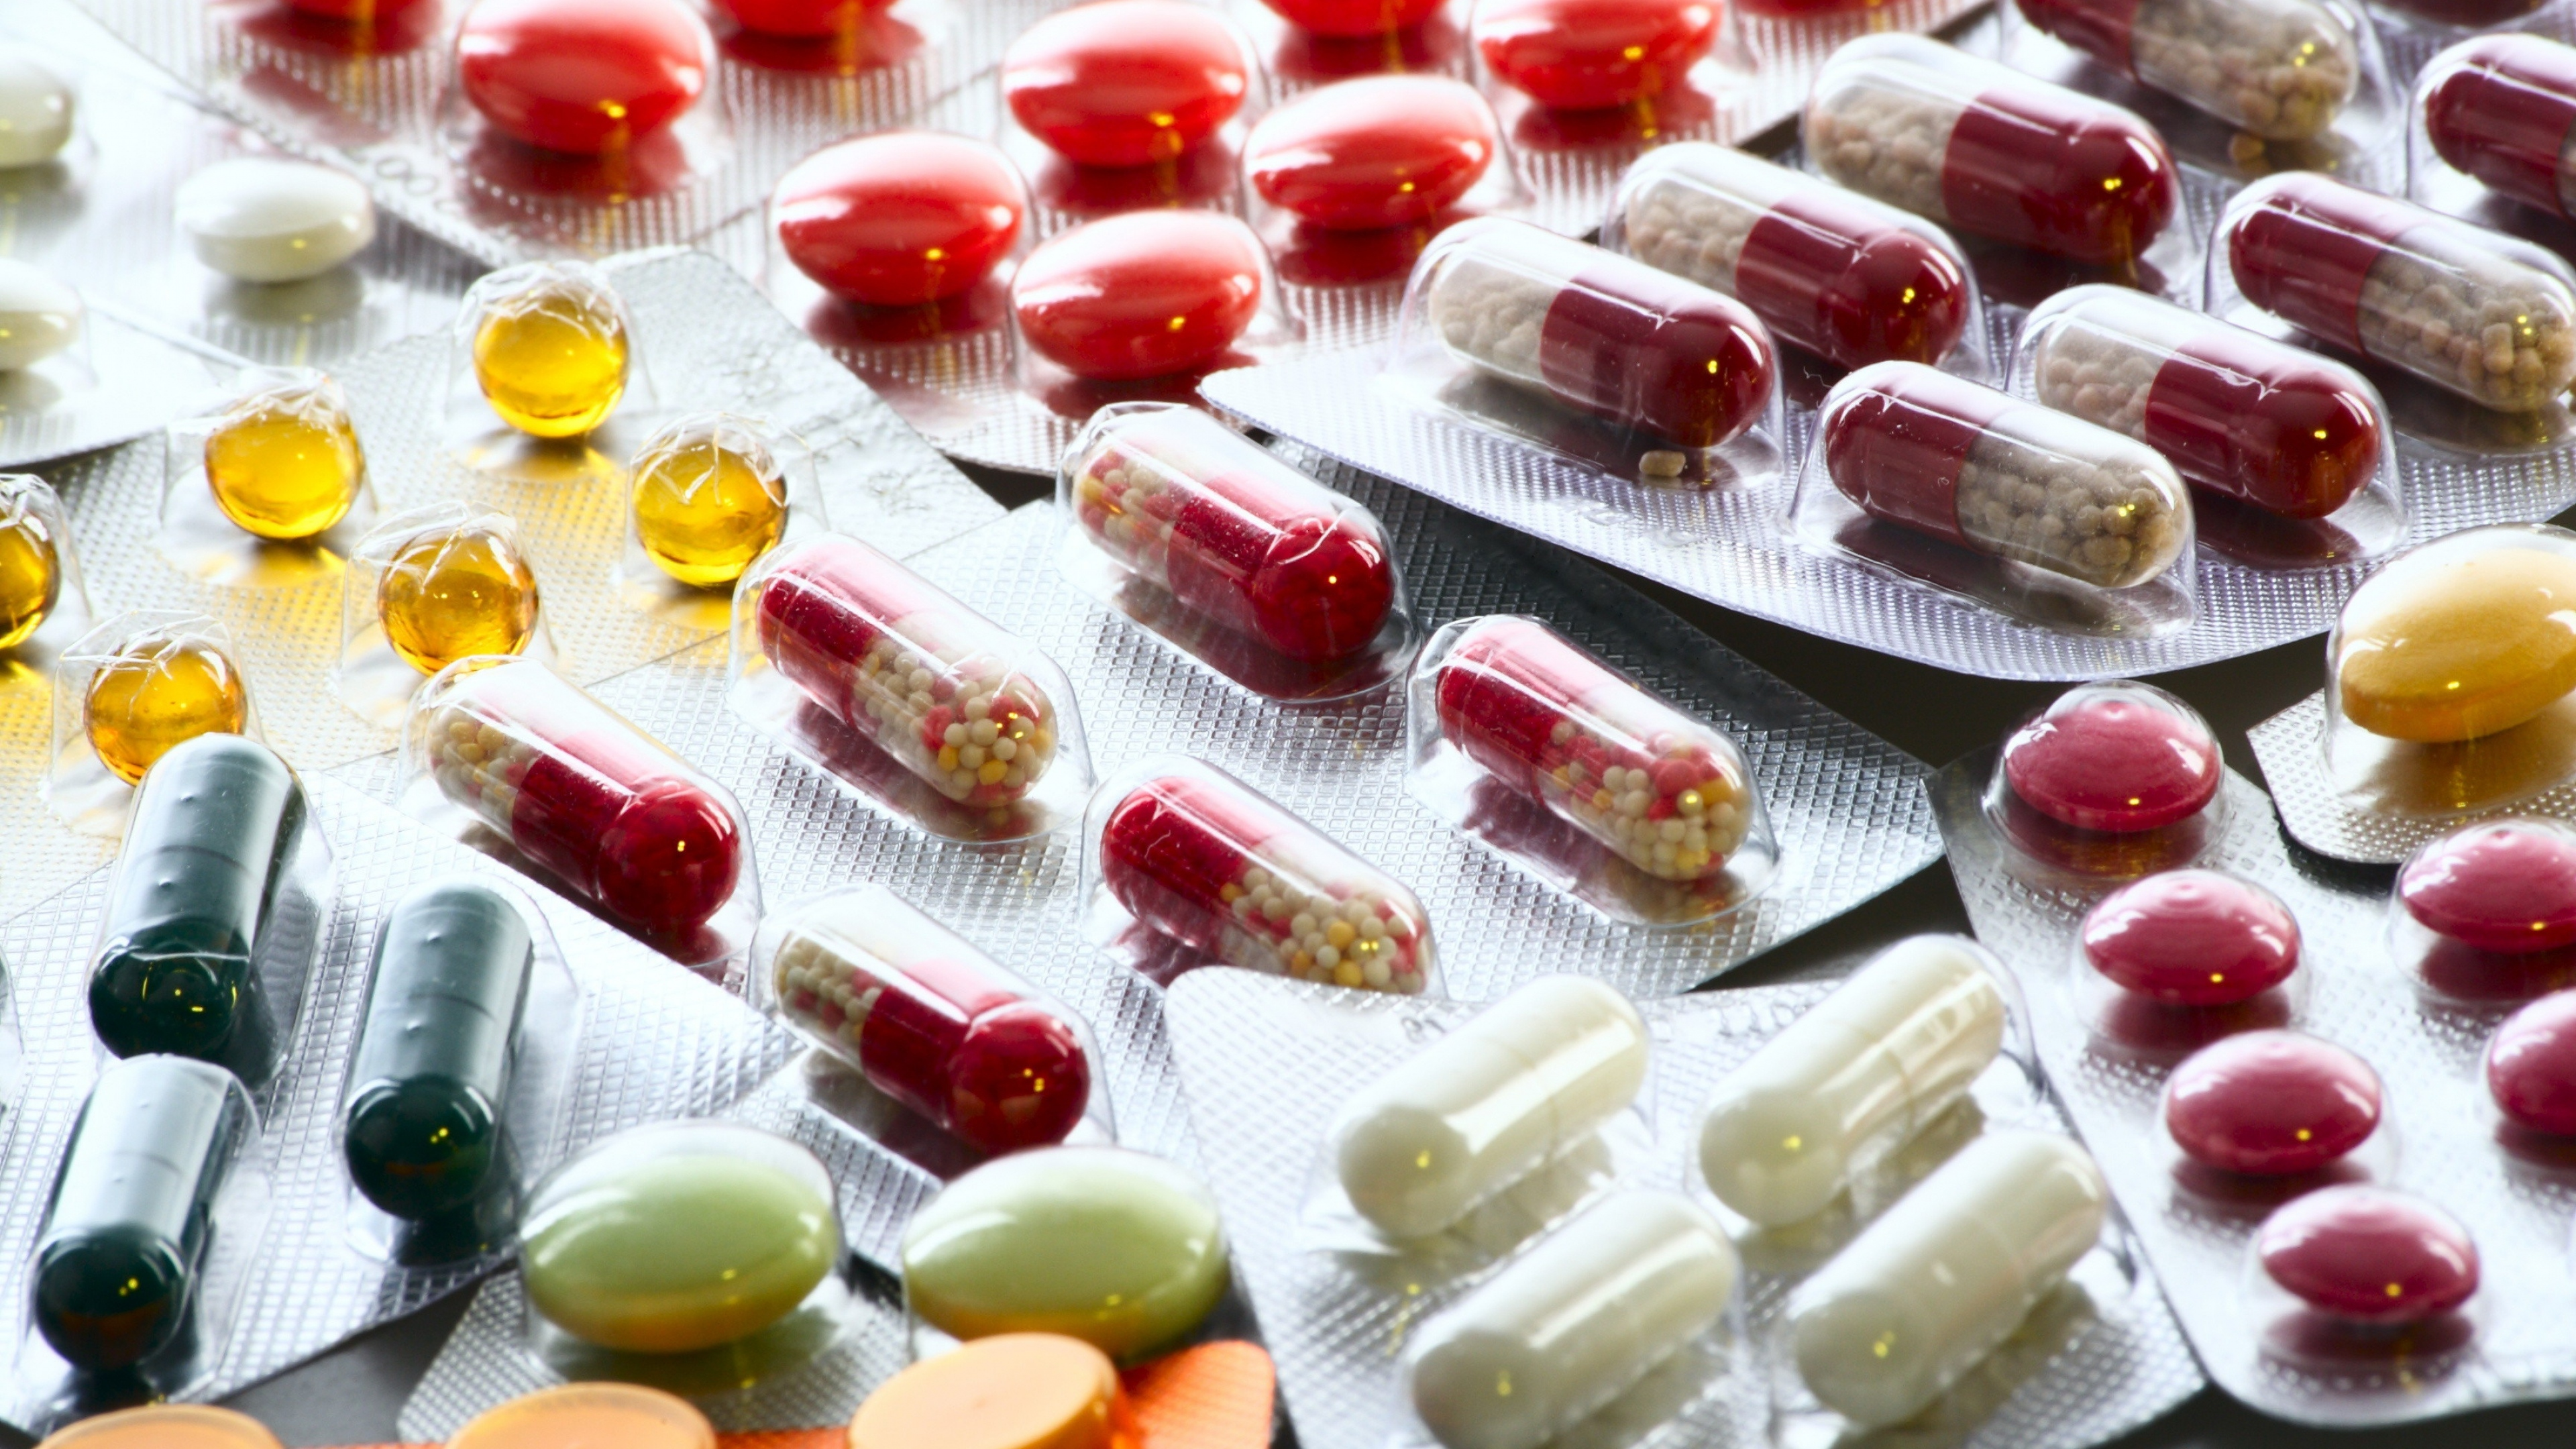 E-approval now required for bringing personal medicines to UAE